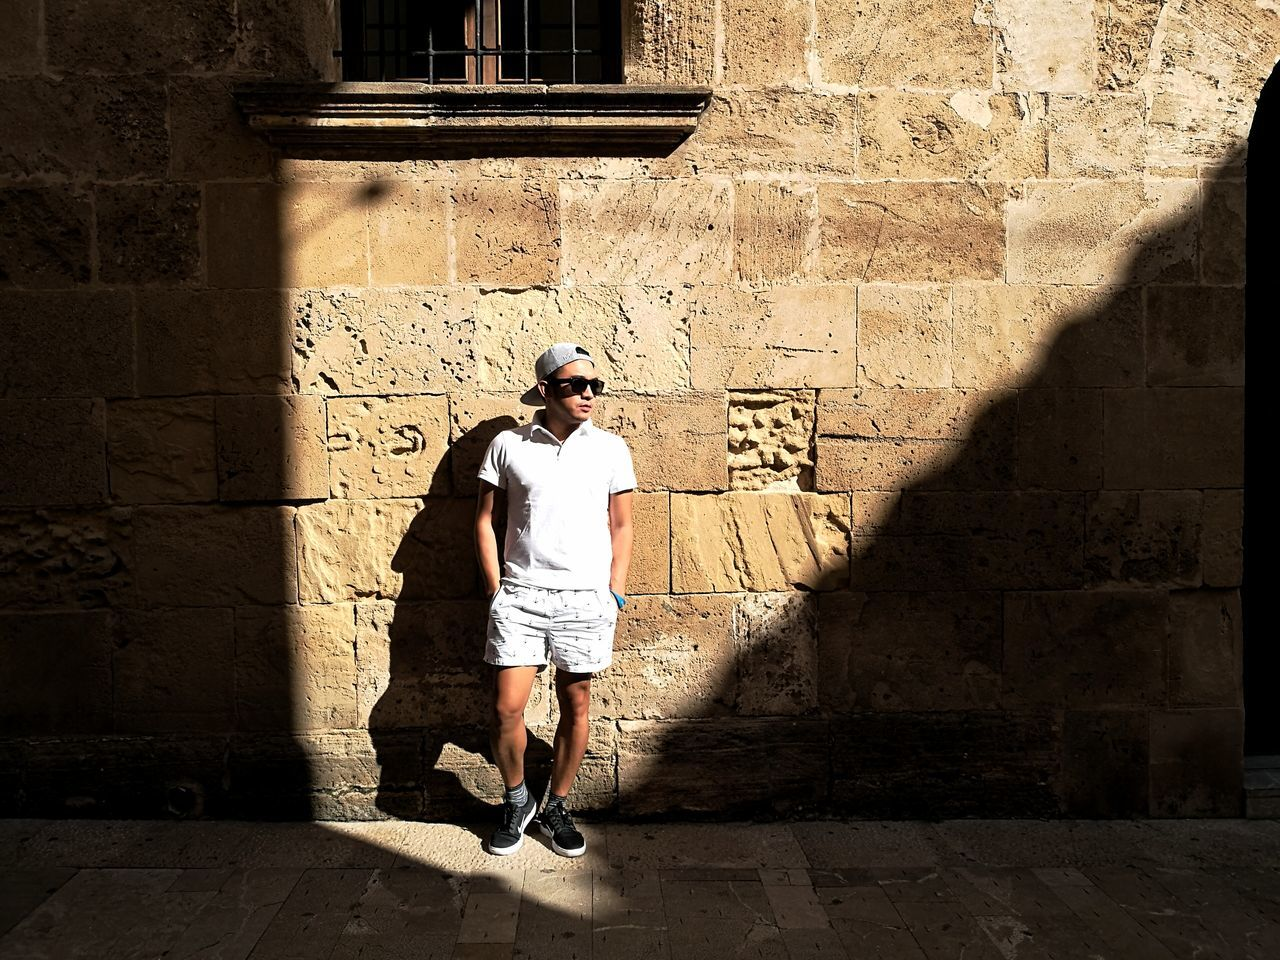 real people, one person, built structure, lifestyles, architecture, full length, building exterior, leisure activity, young men, shadow, young adult, day, casual clothing, outdoors, standing, sunlight, men